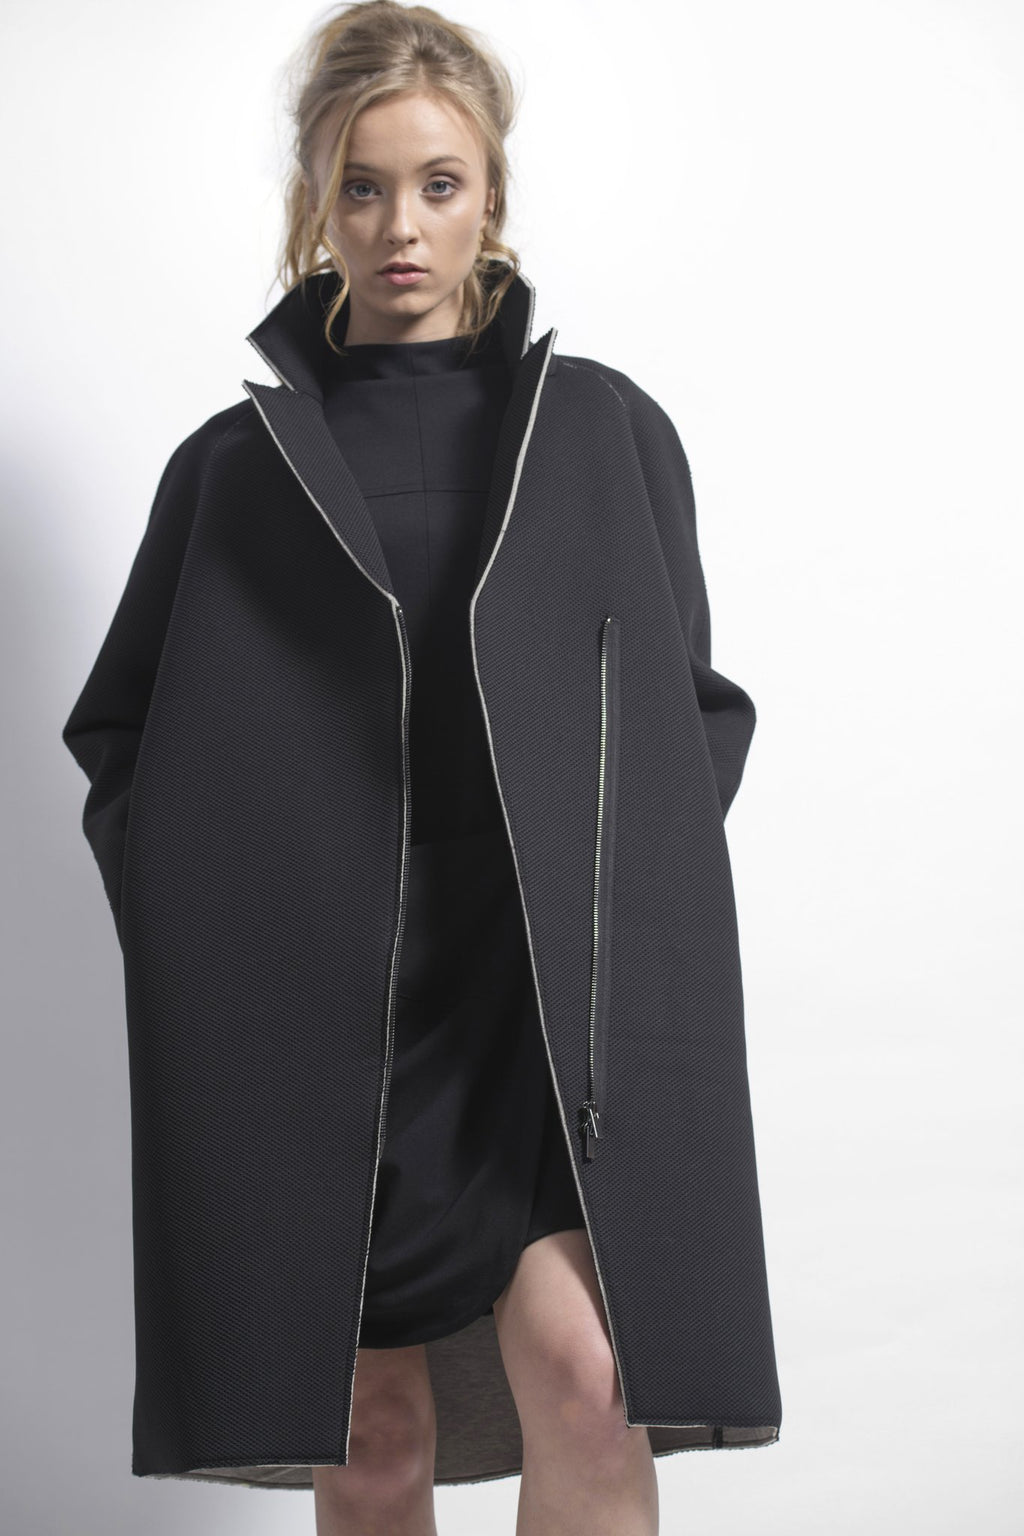 Dref by d sage coat black